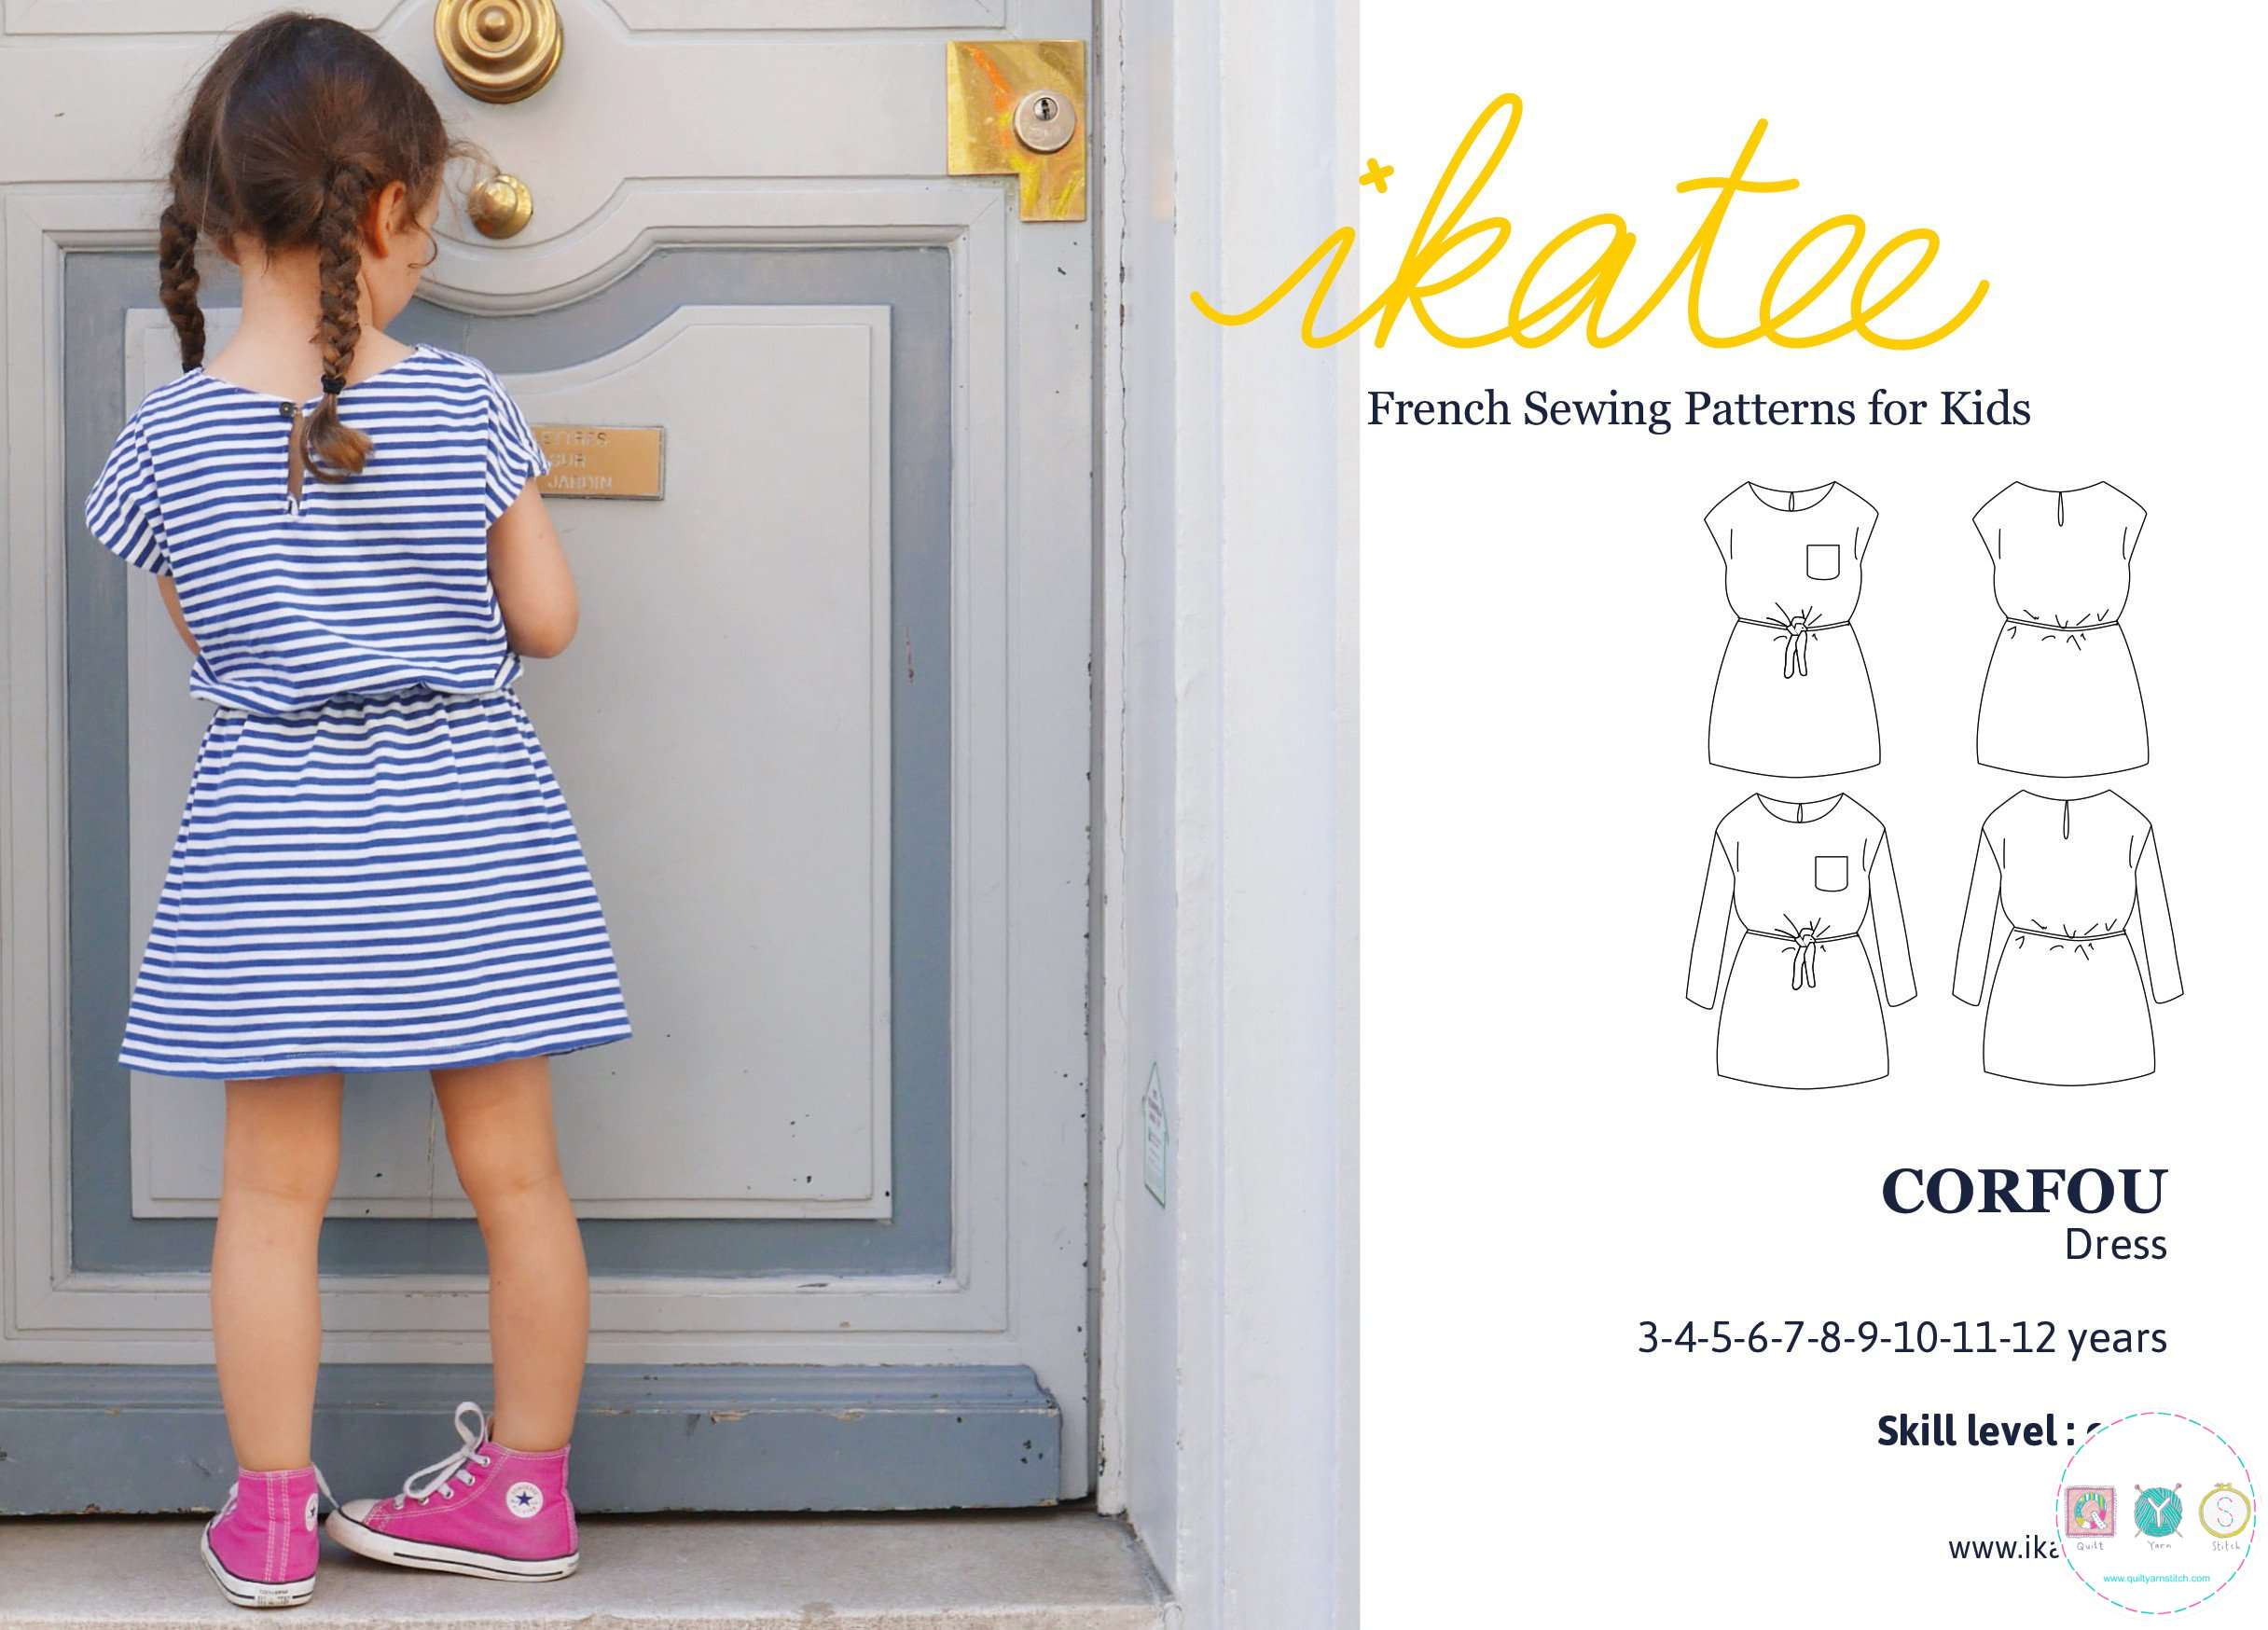 Corfou Dress - by Ikatee - French Sewing Patterns for Kids - Childrens Dressmaking